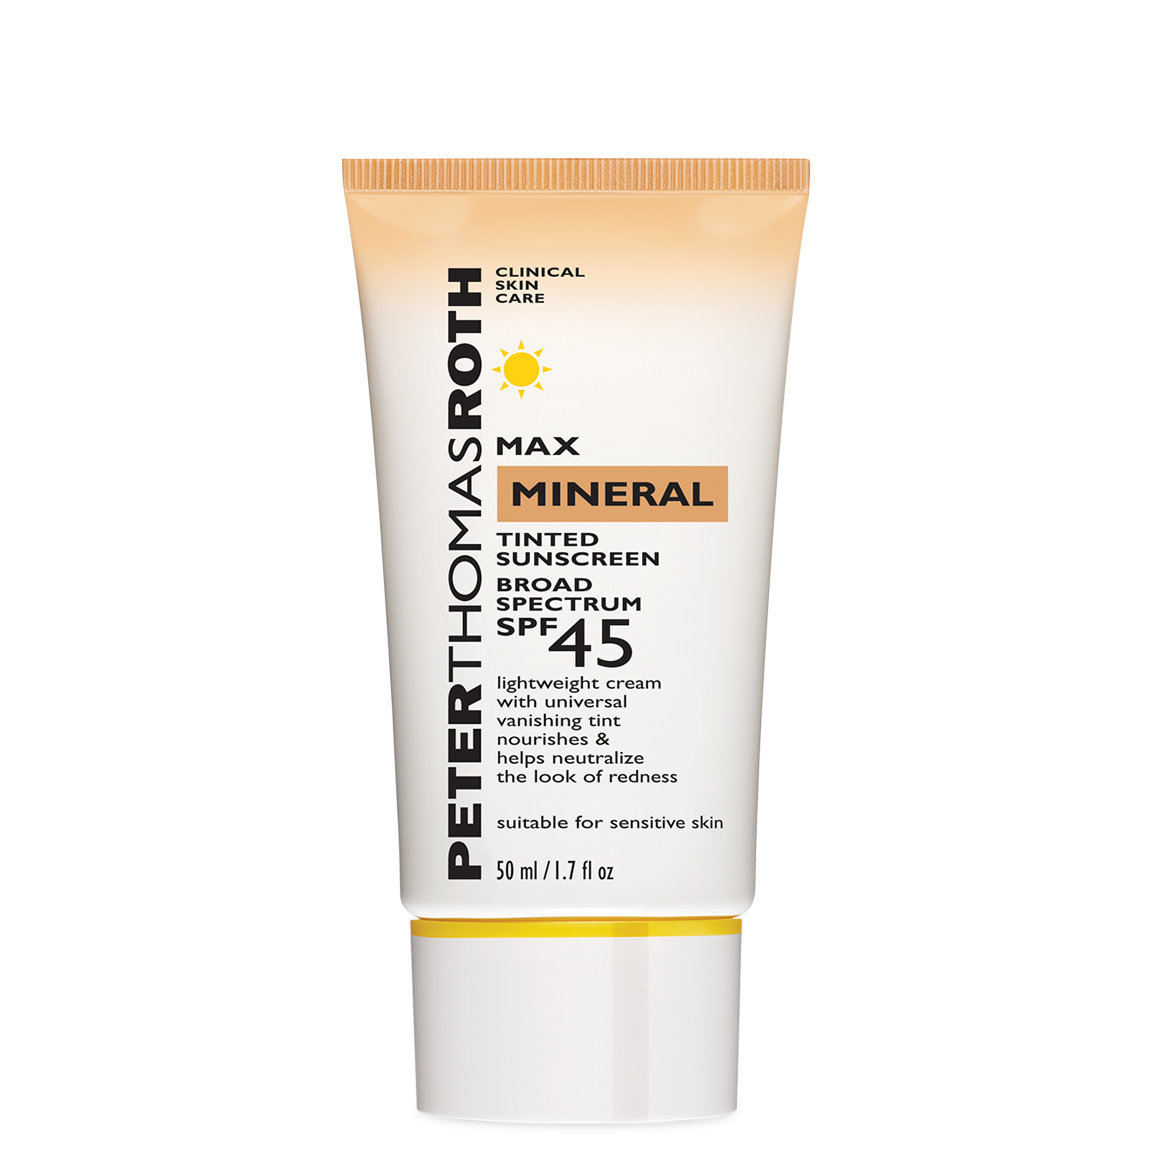 Peter Thomas Roth Max Mineral Tinted Sunscreen Broad Spectrum SPF 45 alternative view 1.